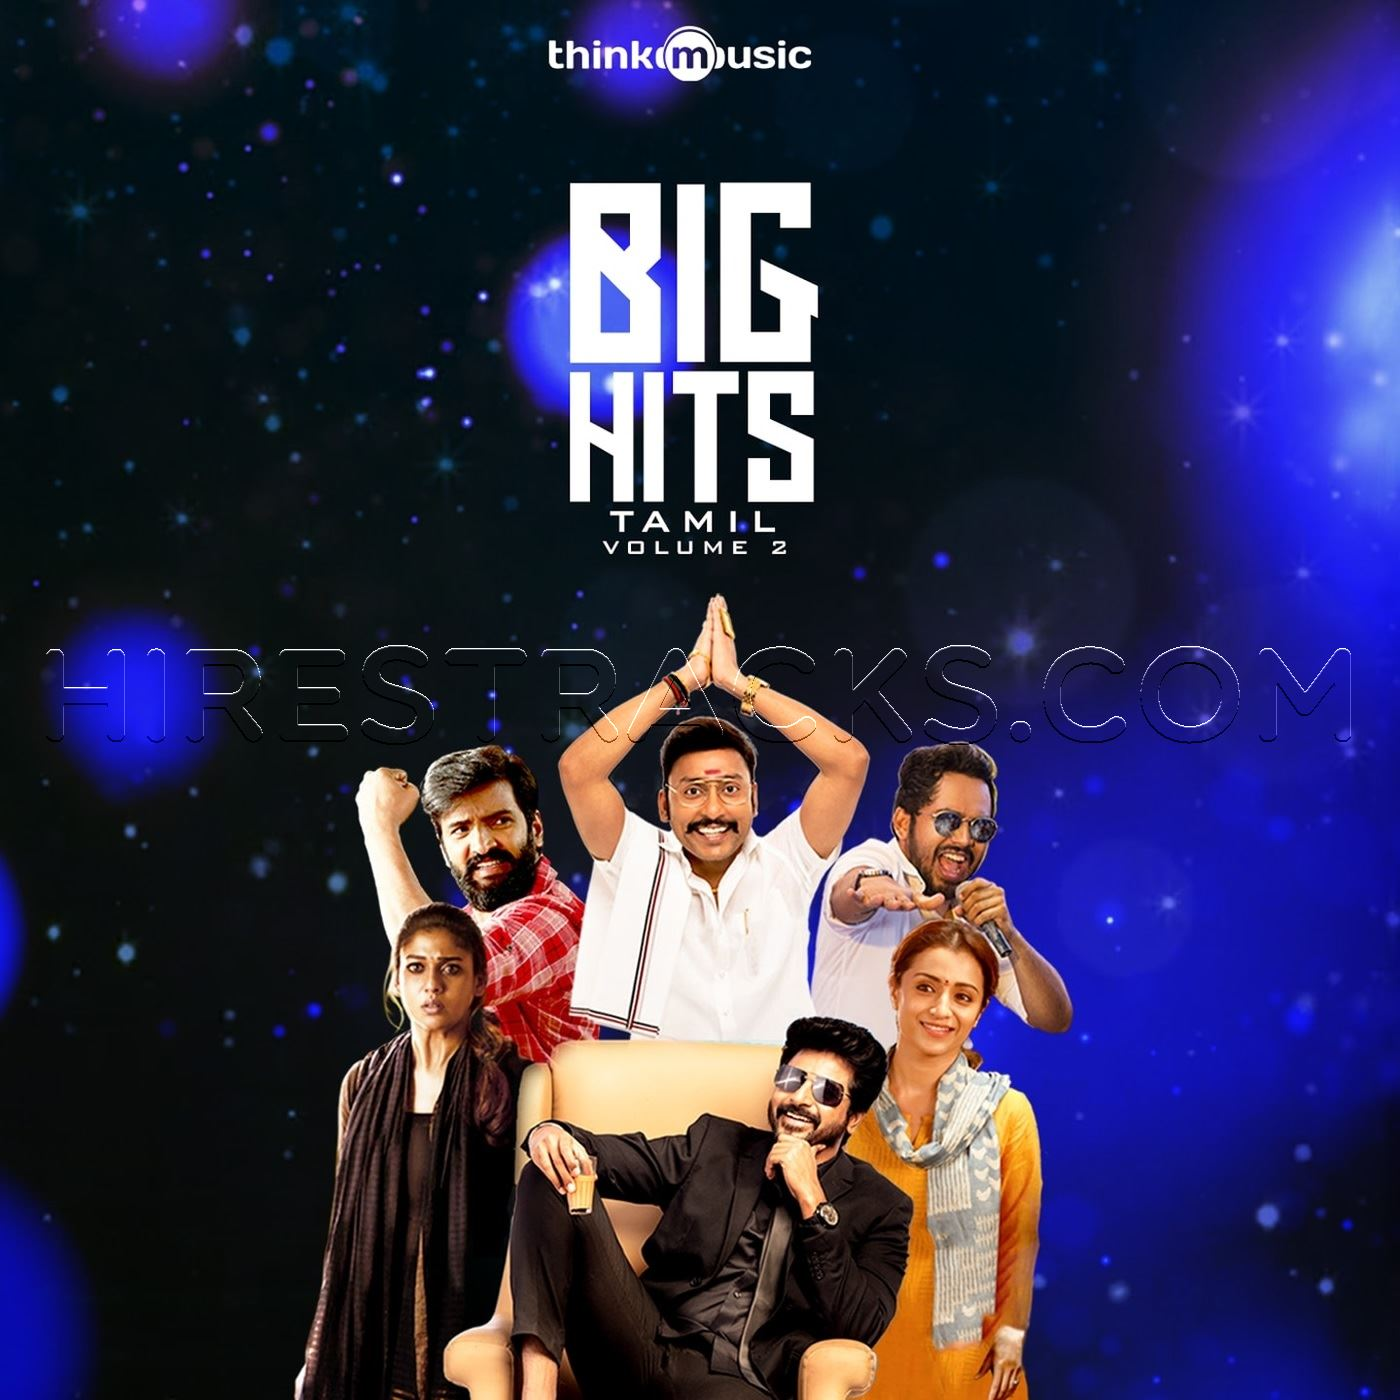 Big Hits, Vol. 2 (2019) (Various Artists) (Think Music)